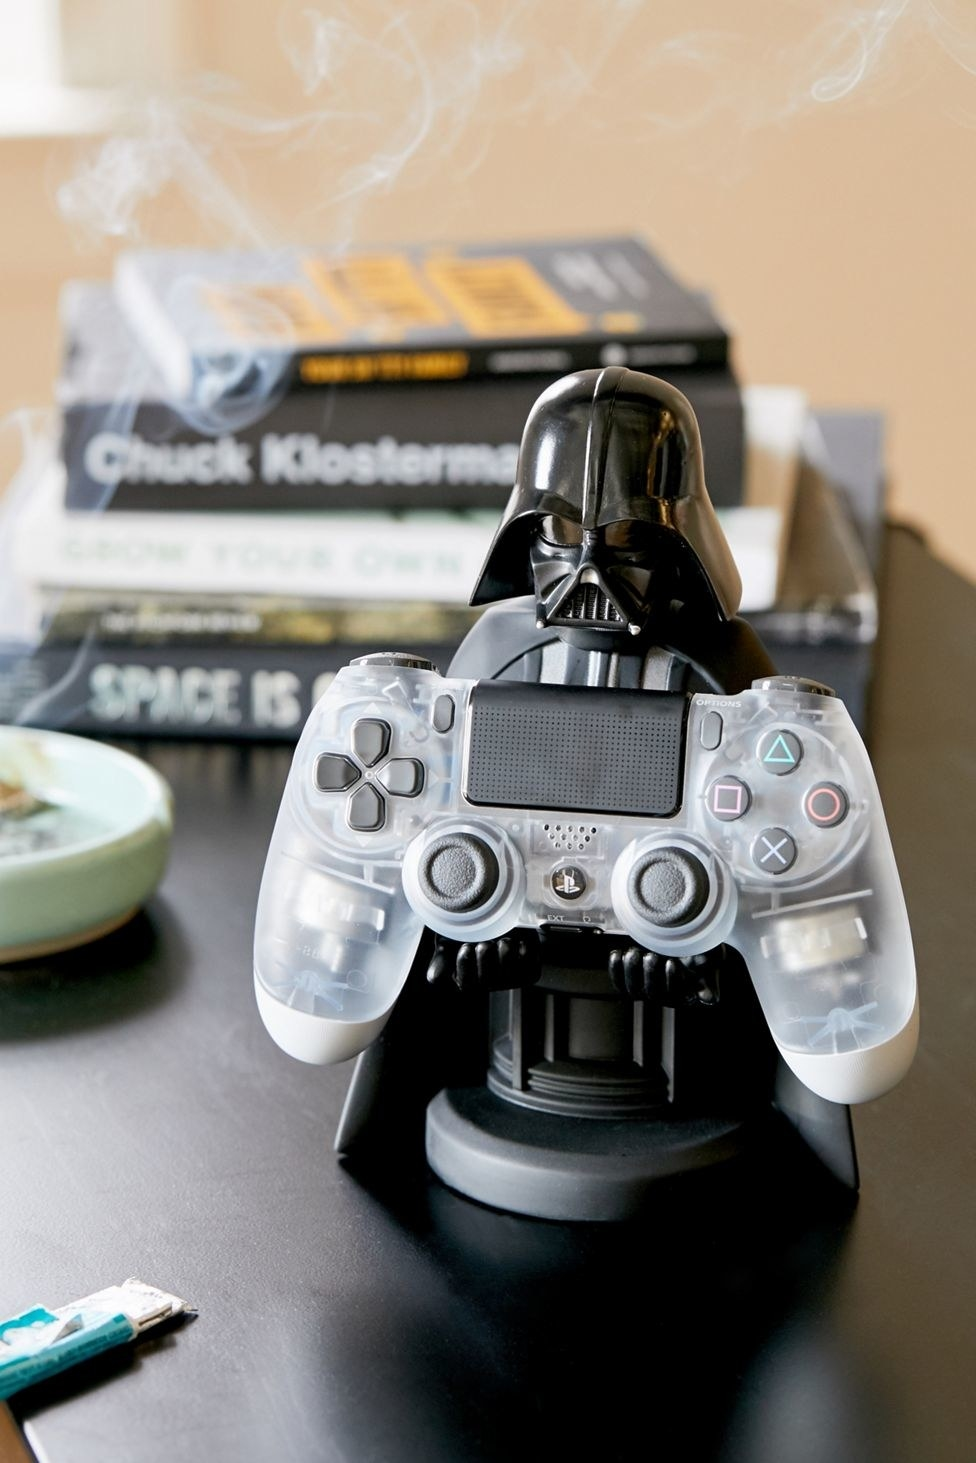 The Darth Vader-shaped device stand holding a game controller